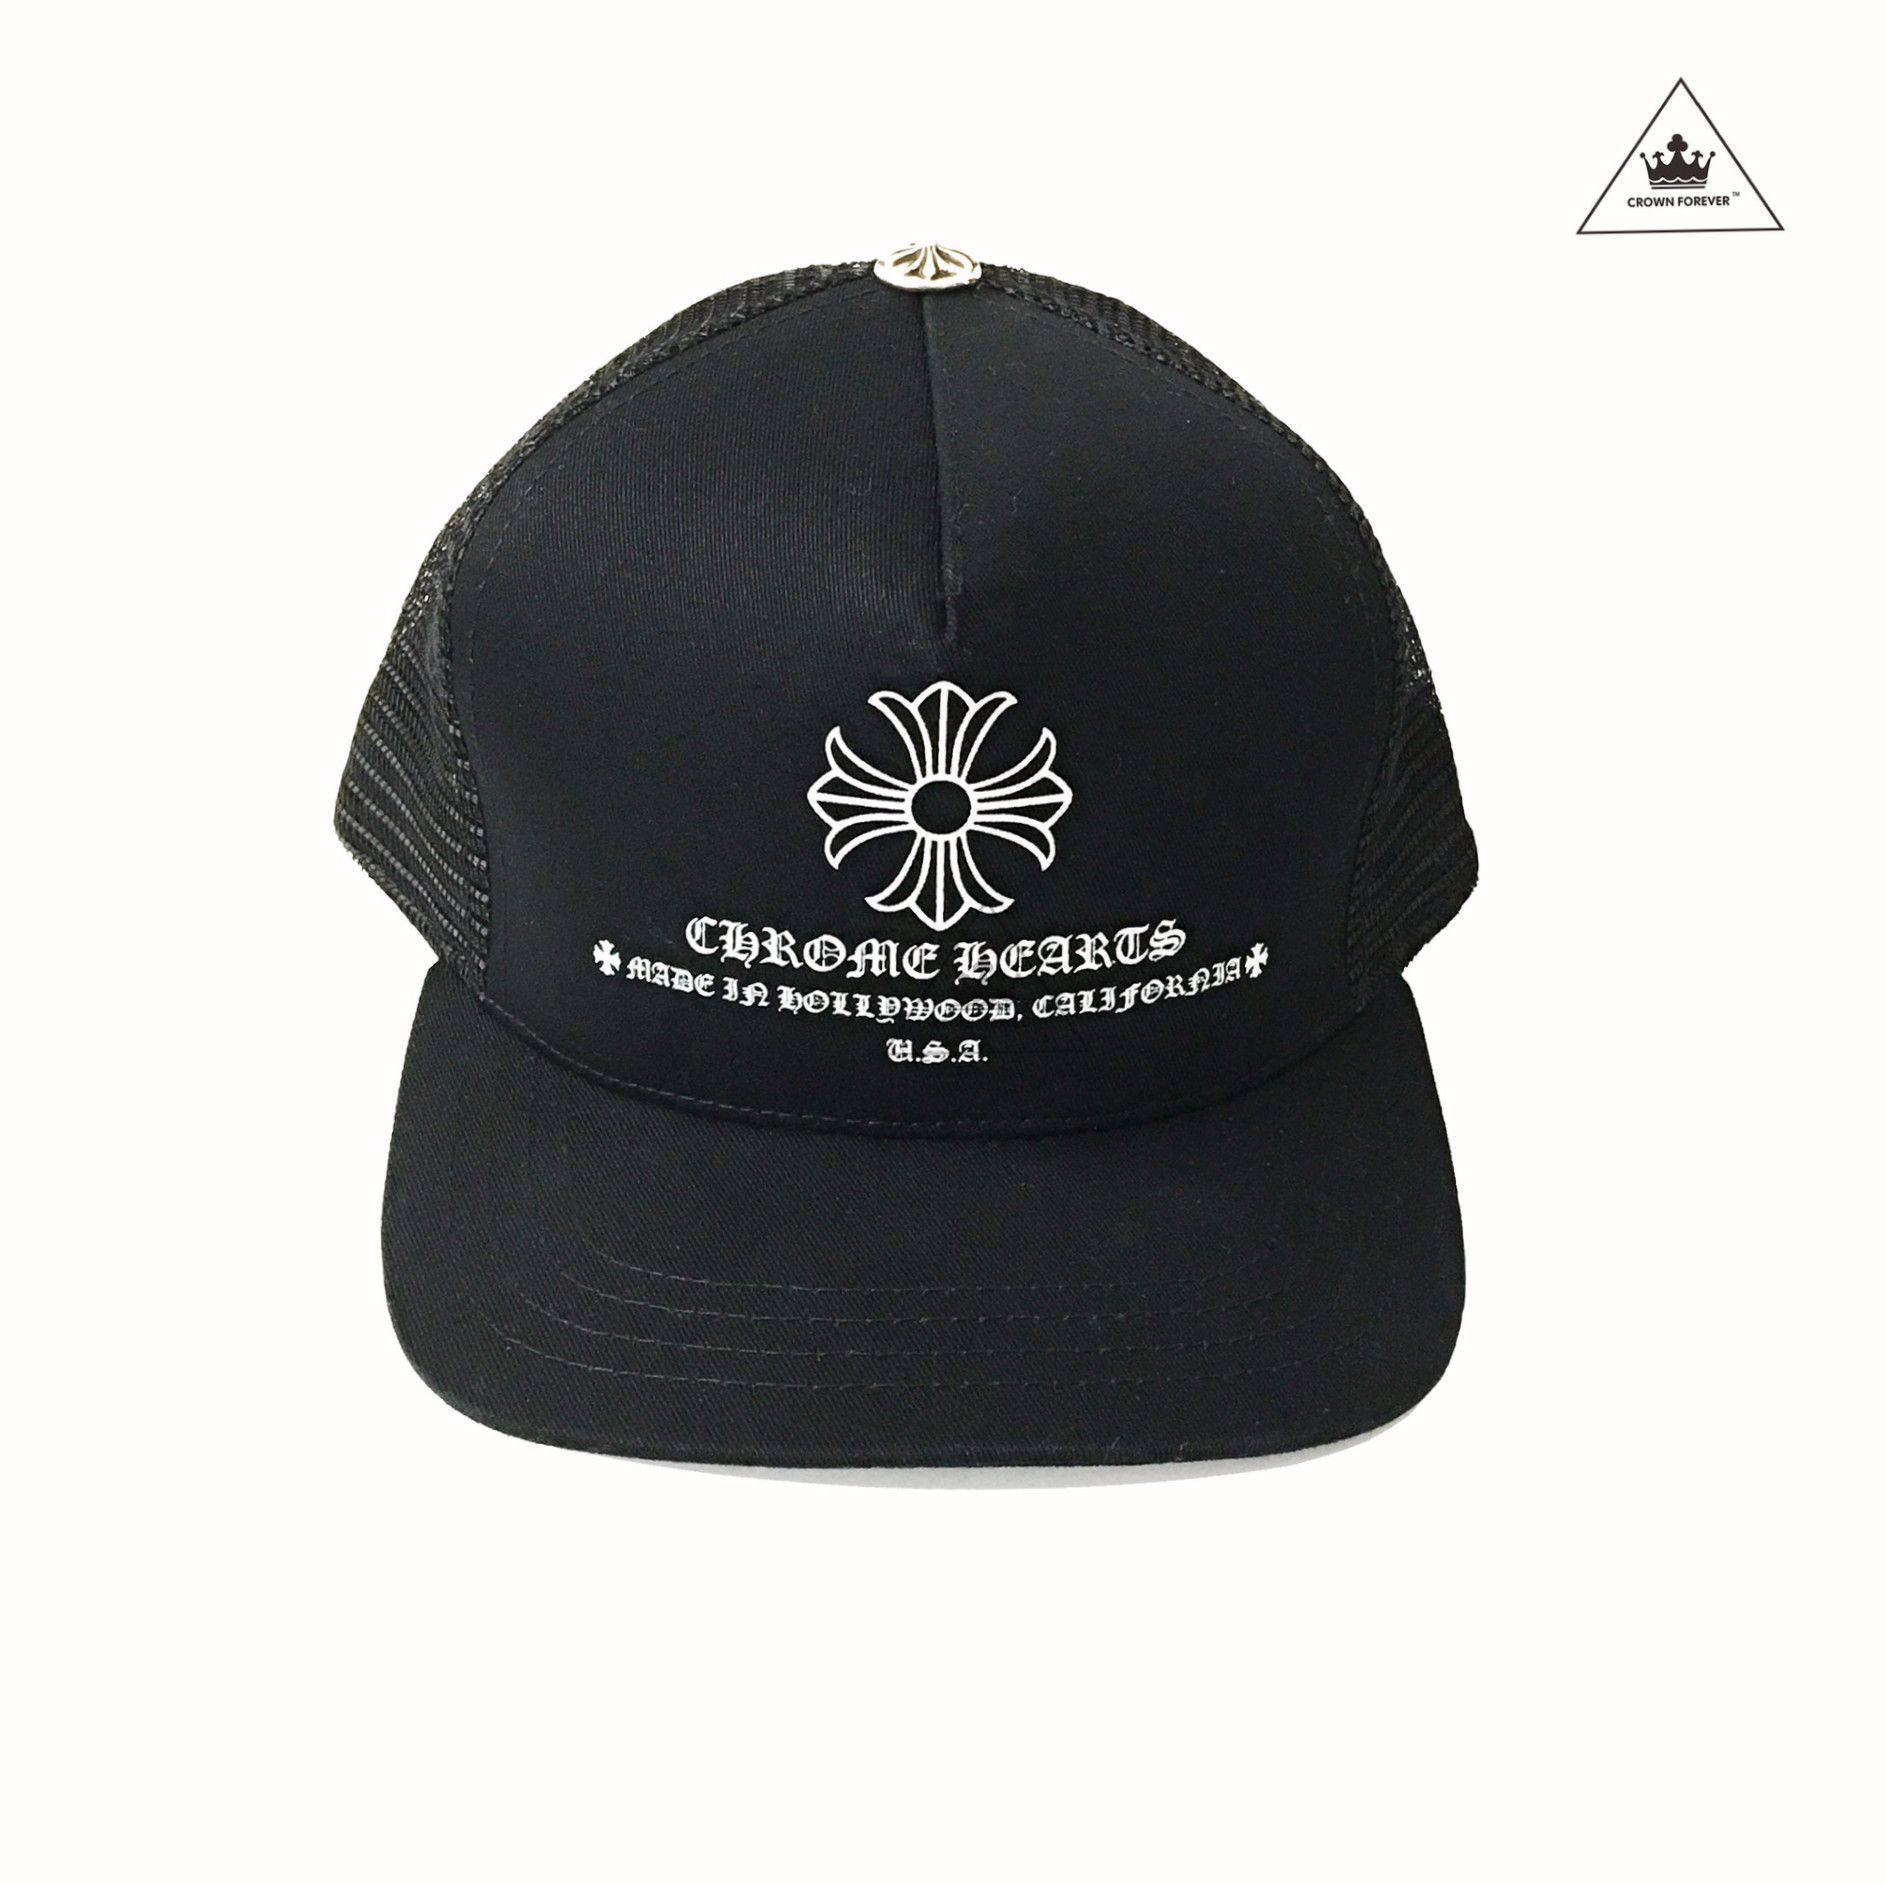 77800f6b2694d CH Made In Hollywood CAP Black Chrome Hearts